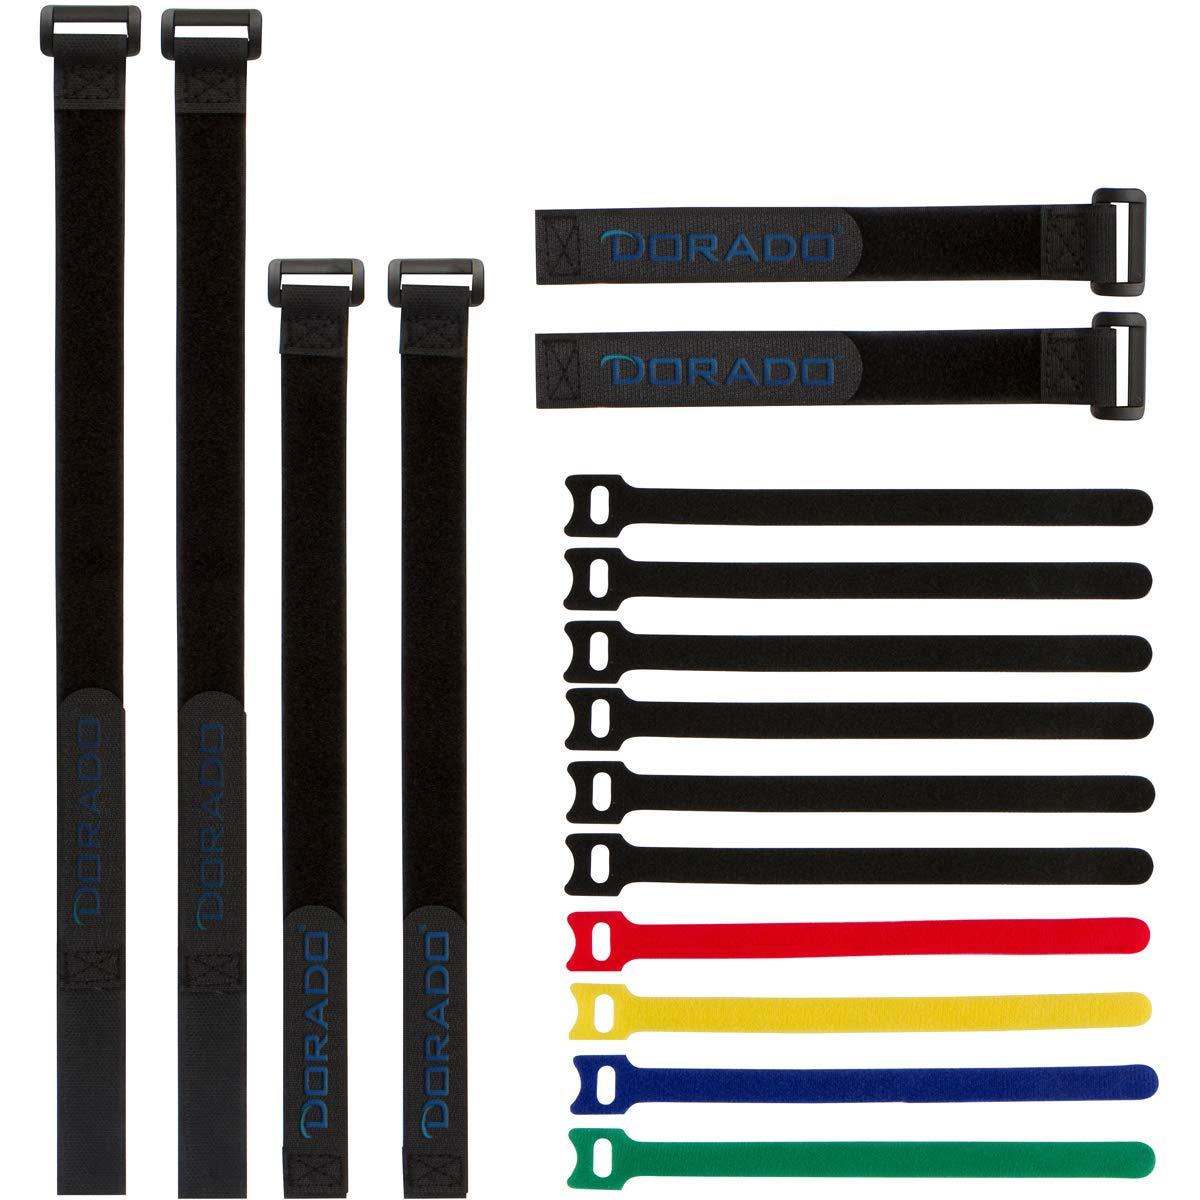 Reusable Cable Ties & Cinch Strap Set: Adjustable, All Purpose Hook Loop Fastening Straps for Home & Office Cord Management, Bundle & Secure Wires and More, Assorted 16 Pack, Black DORADO 4330221286